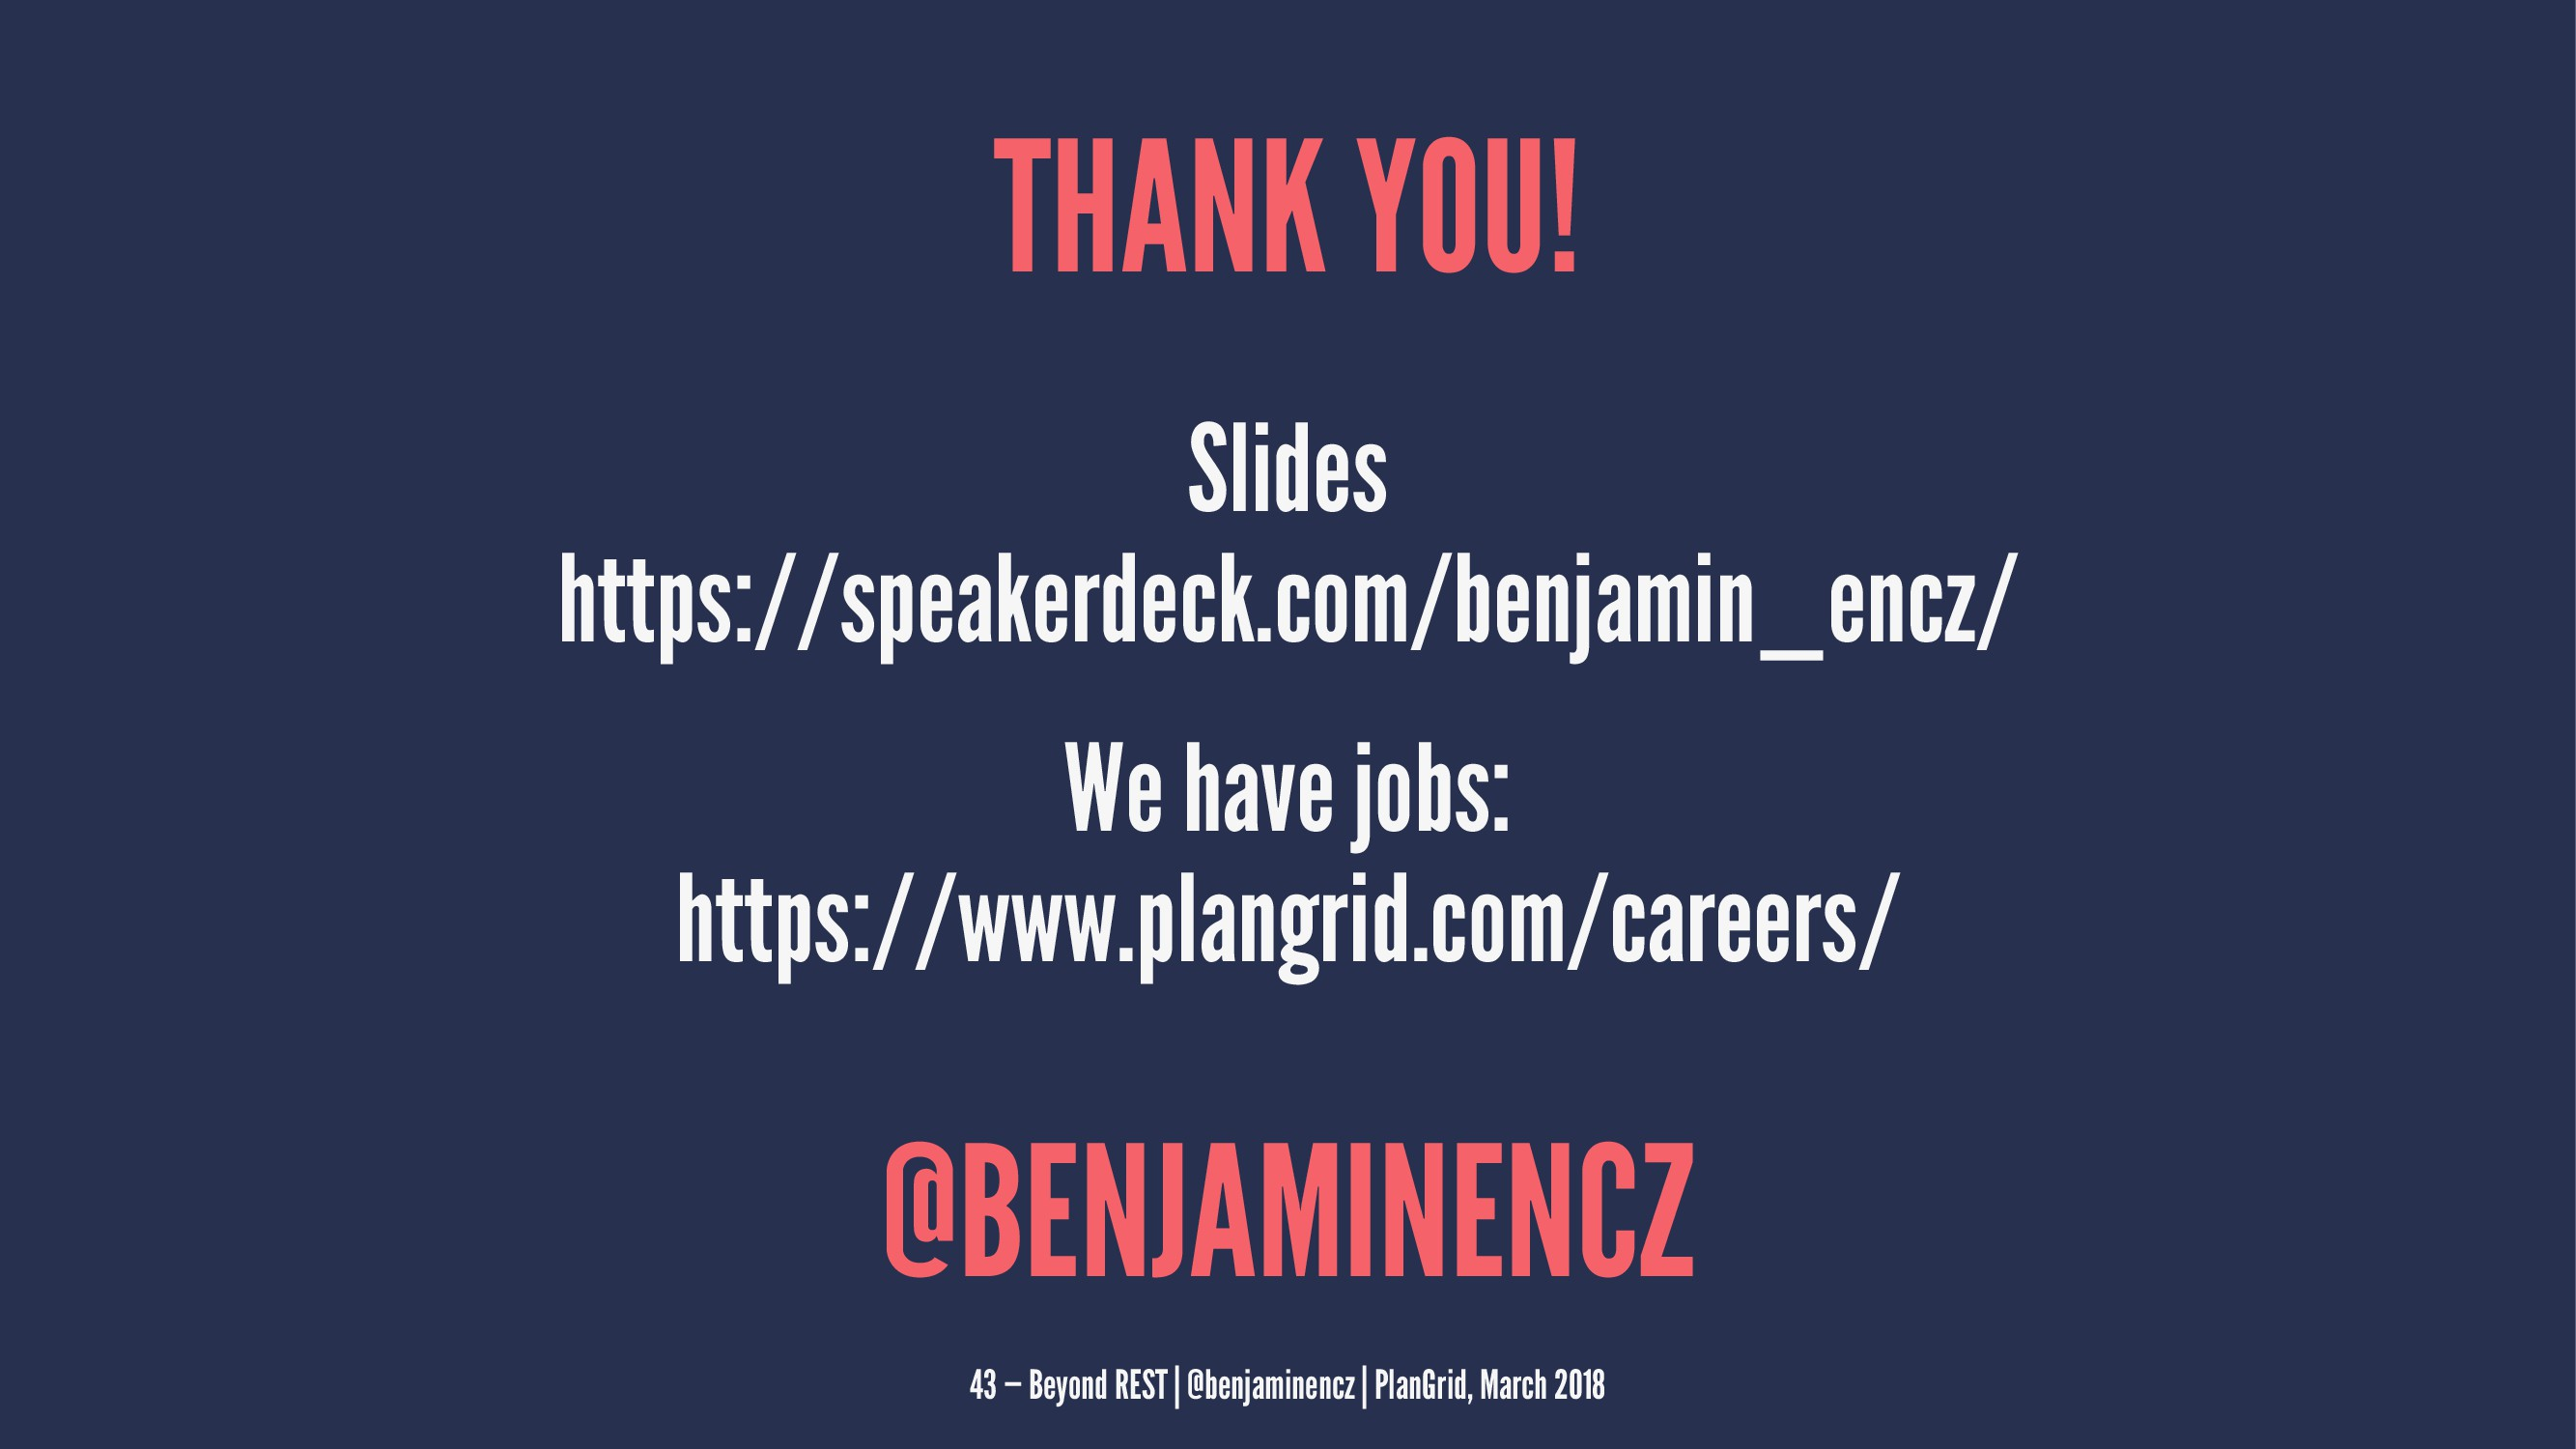 THANK YOU! Slides https://speakerdeck.com/benja...